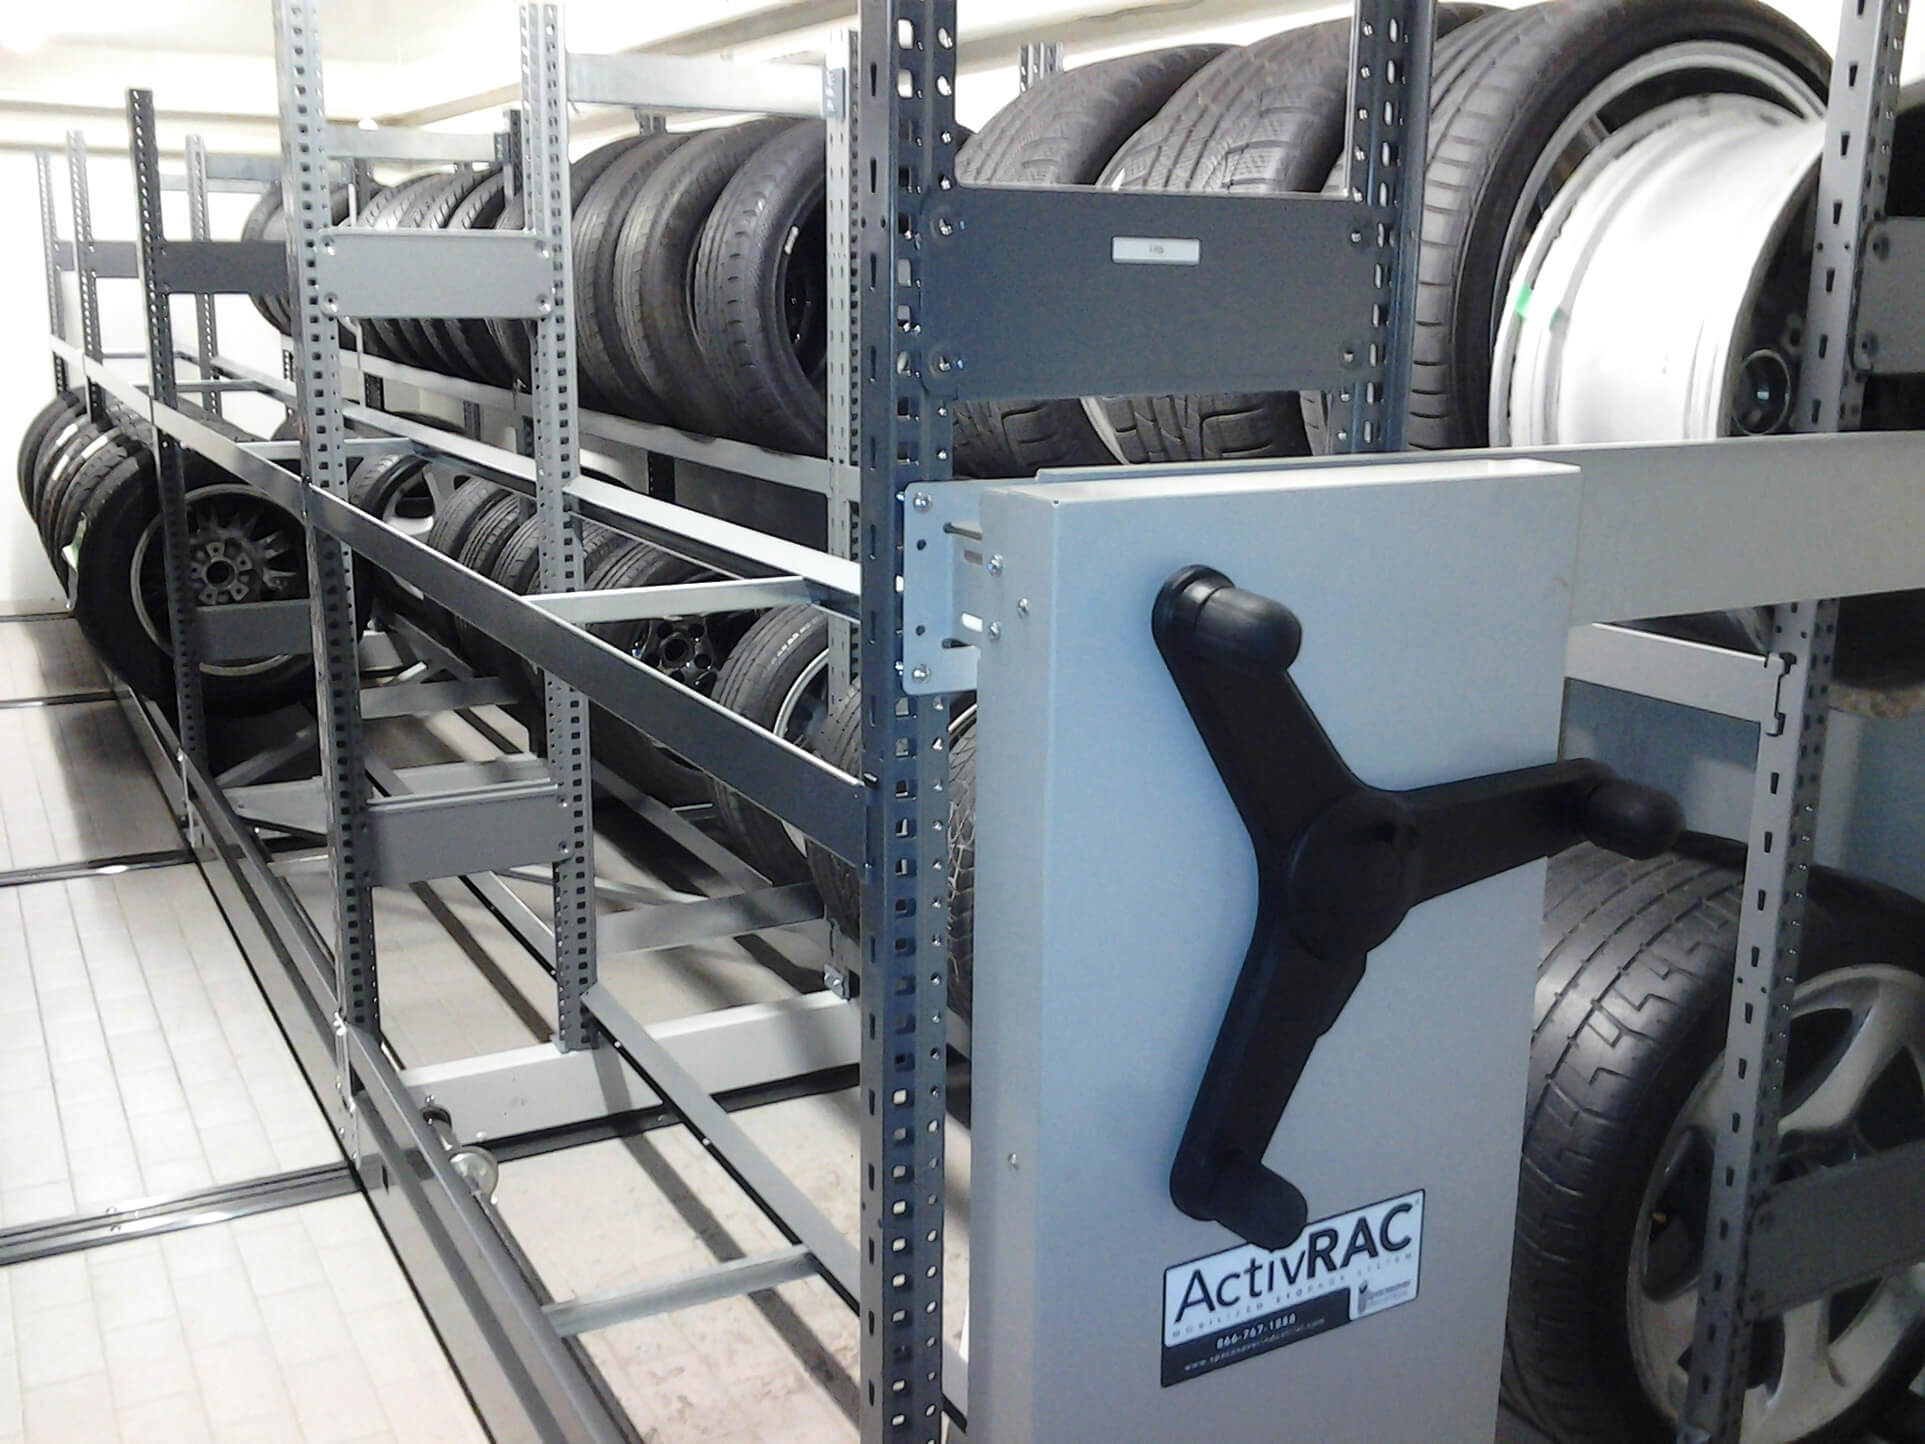 Tire storage on compact warehouse racking